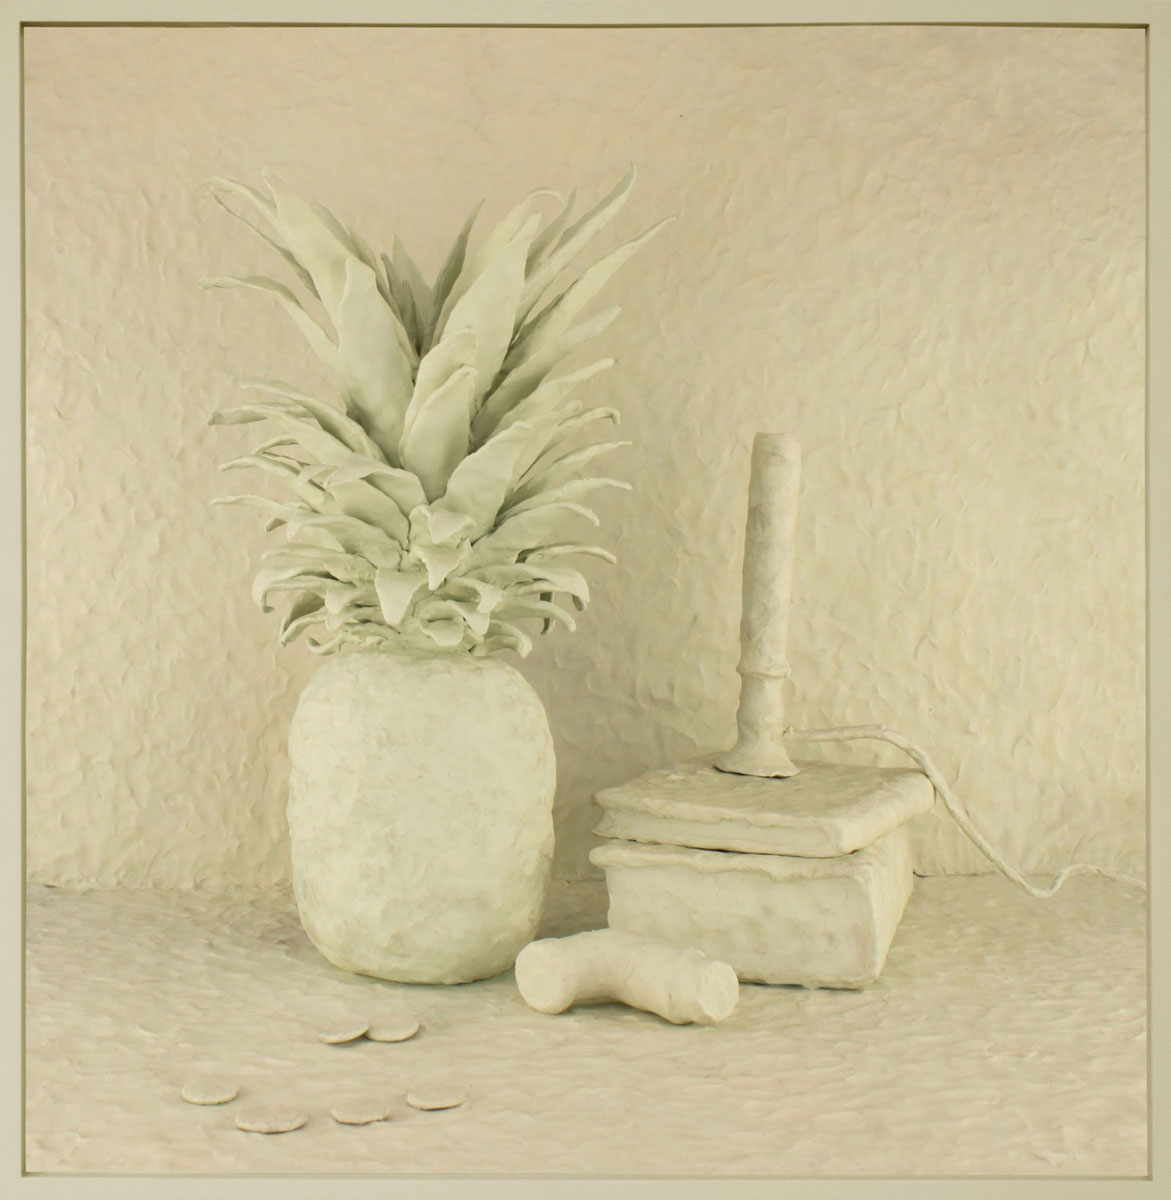 Untitled (Still Life w Pineapple 2)